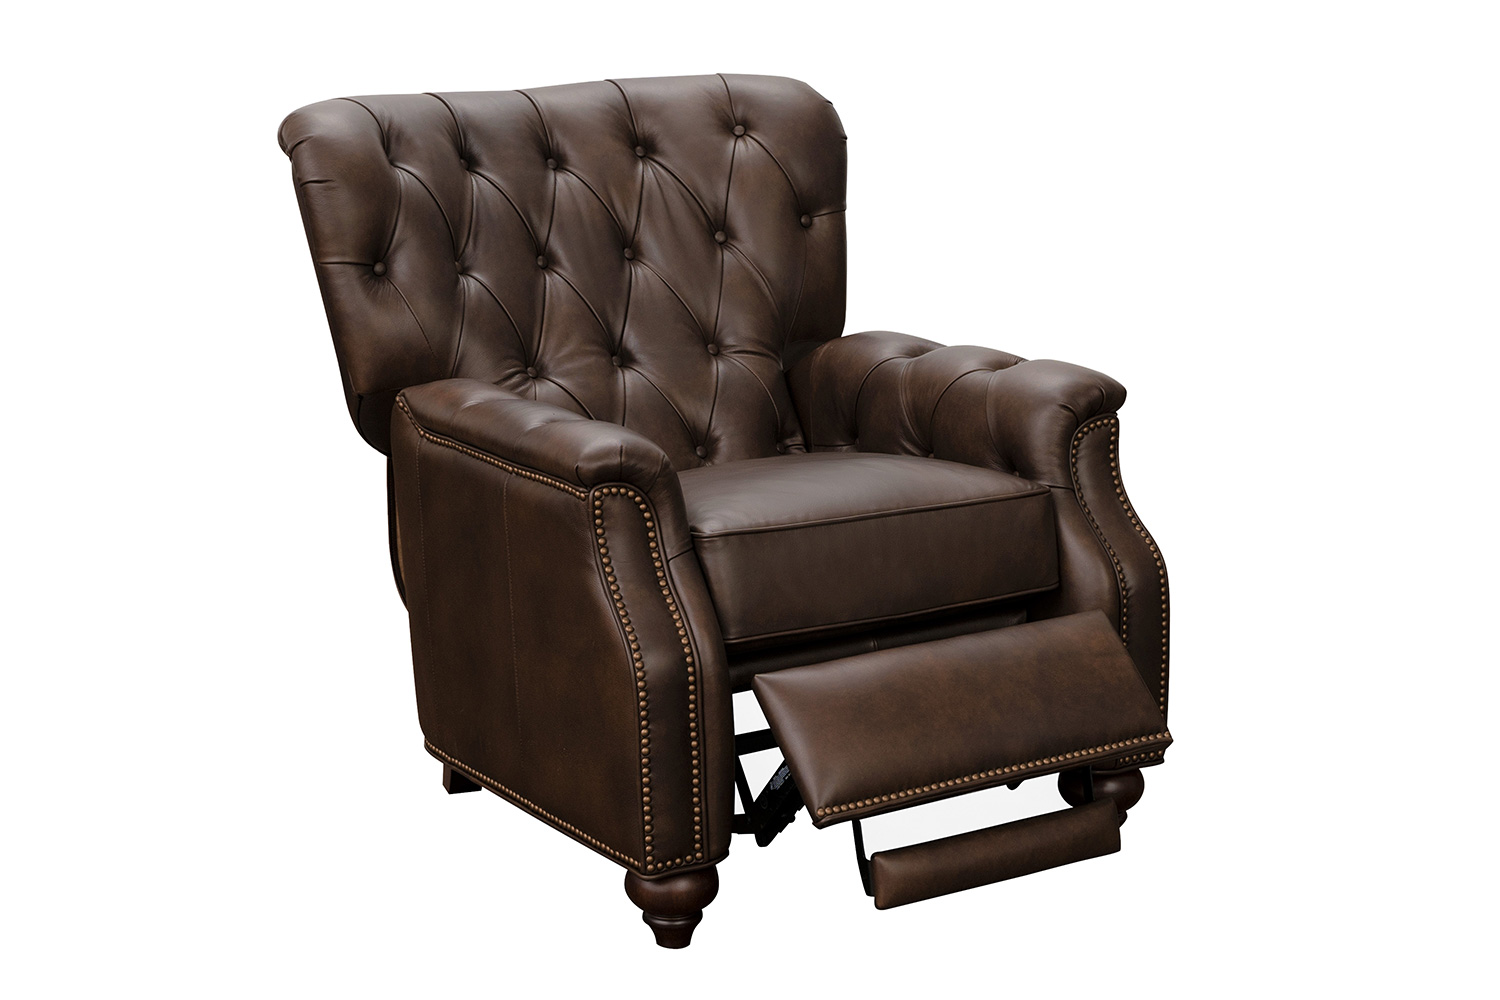 Barcalounger Lombard Recliner Chair - Ashford Walnut/All Leather